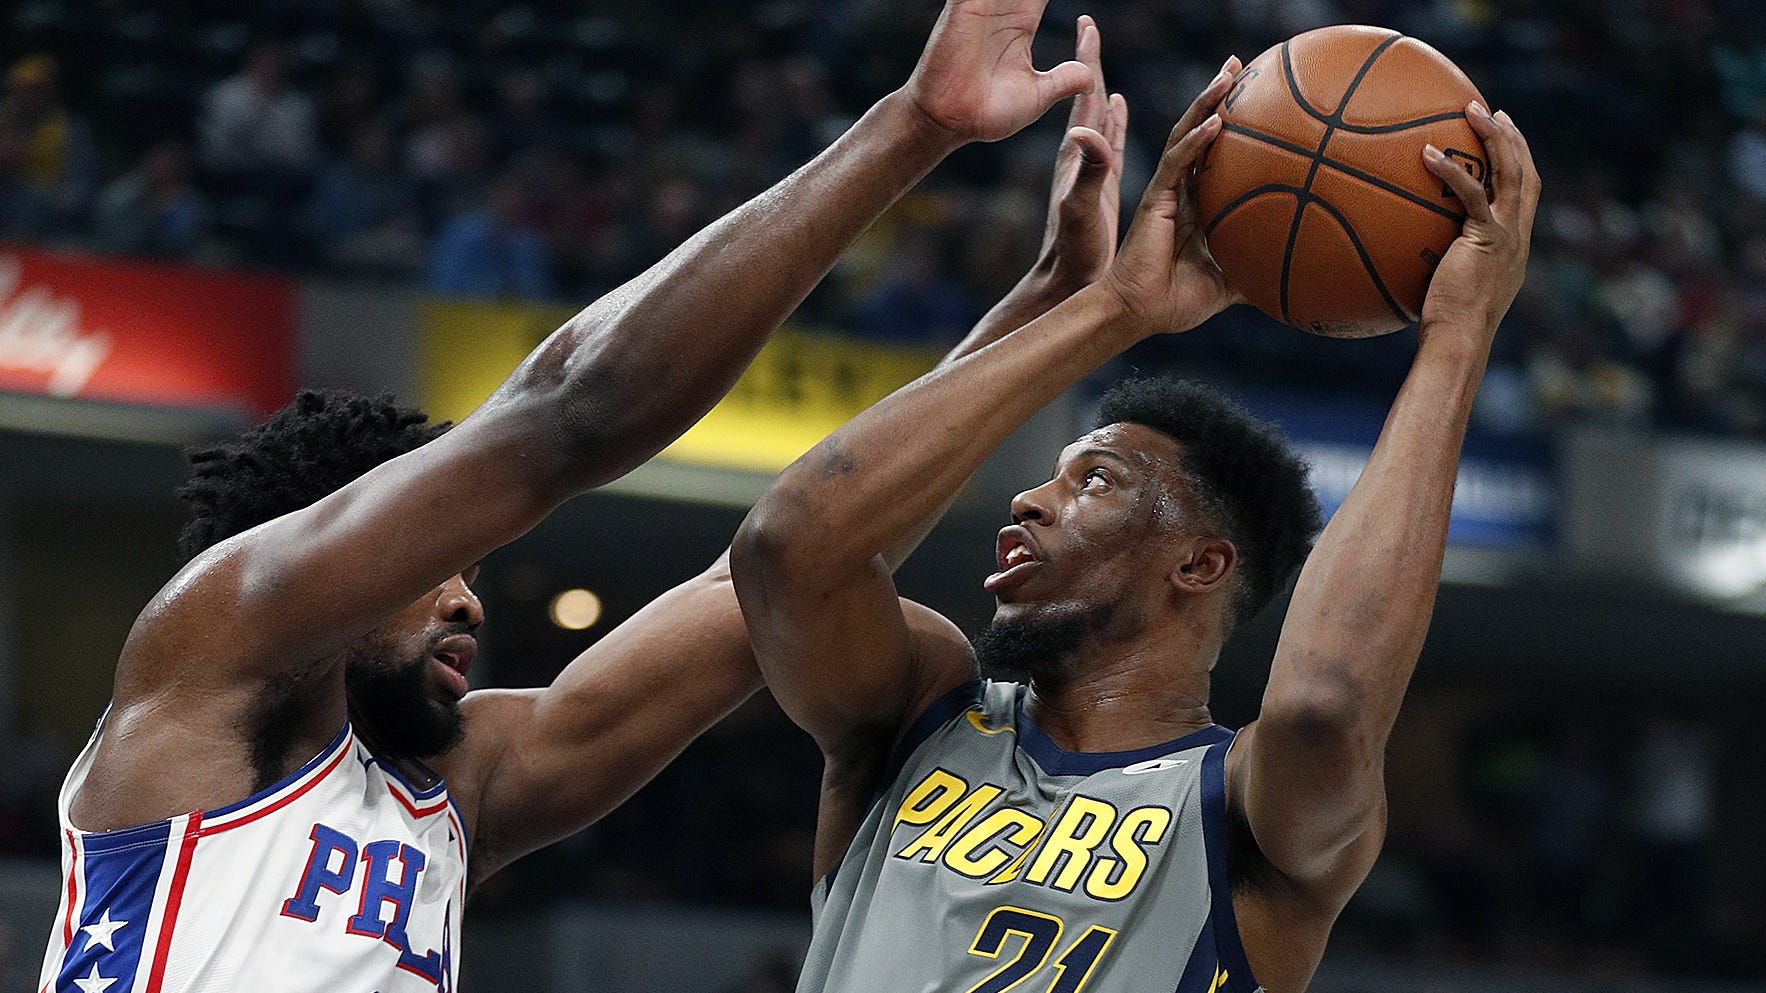 Indiana Pacers forward Thaddeus Young (21) shoots over Philadelphia 76ers center Joel Embiid (21) in the first half of their game at Bankers Life Fieldhouse on Thursday, Jan. 17, 2019.